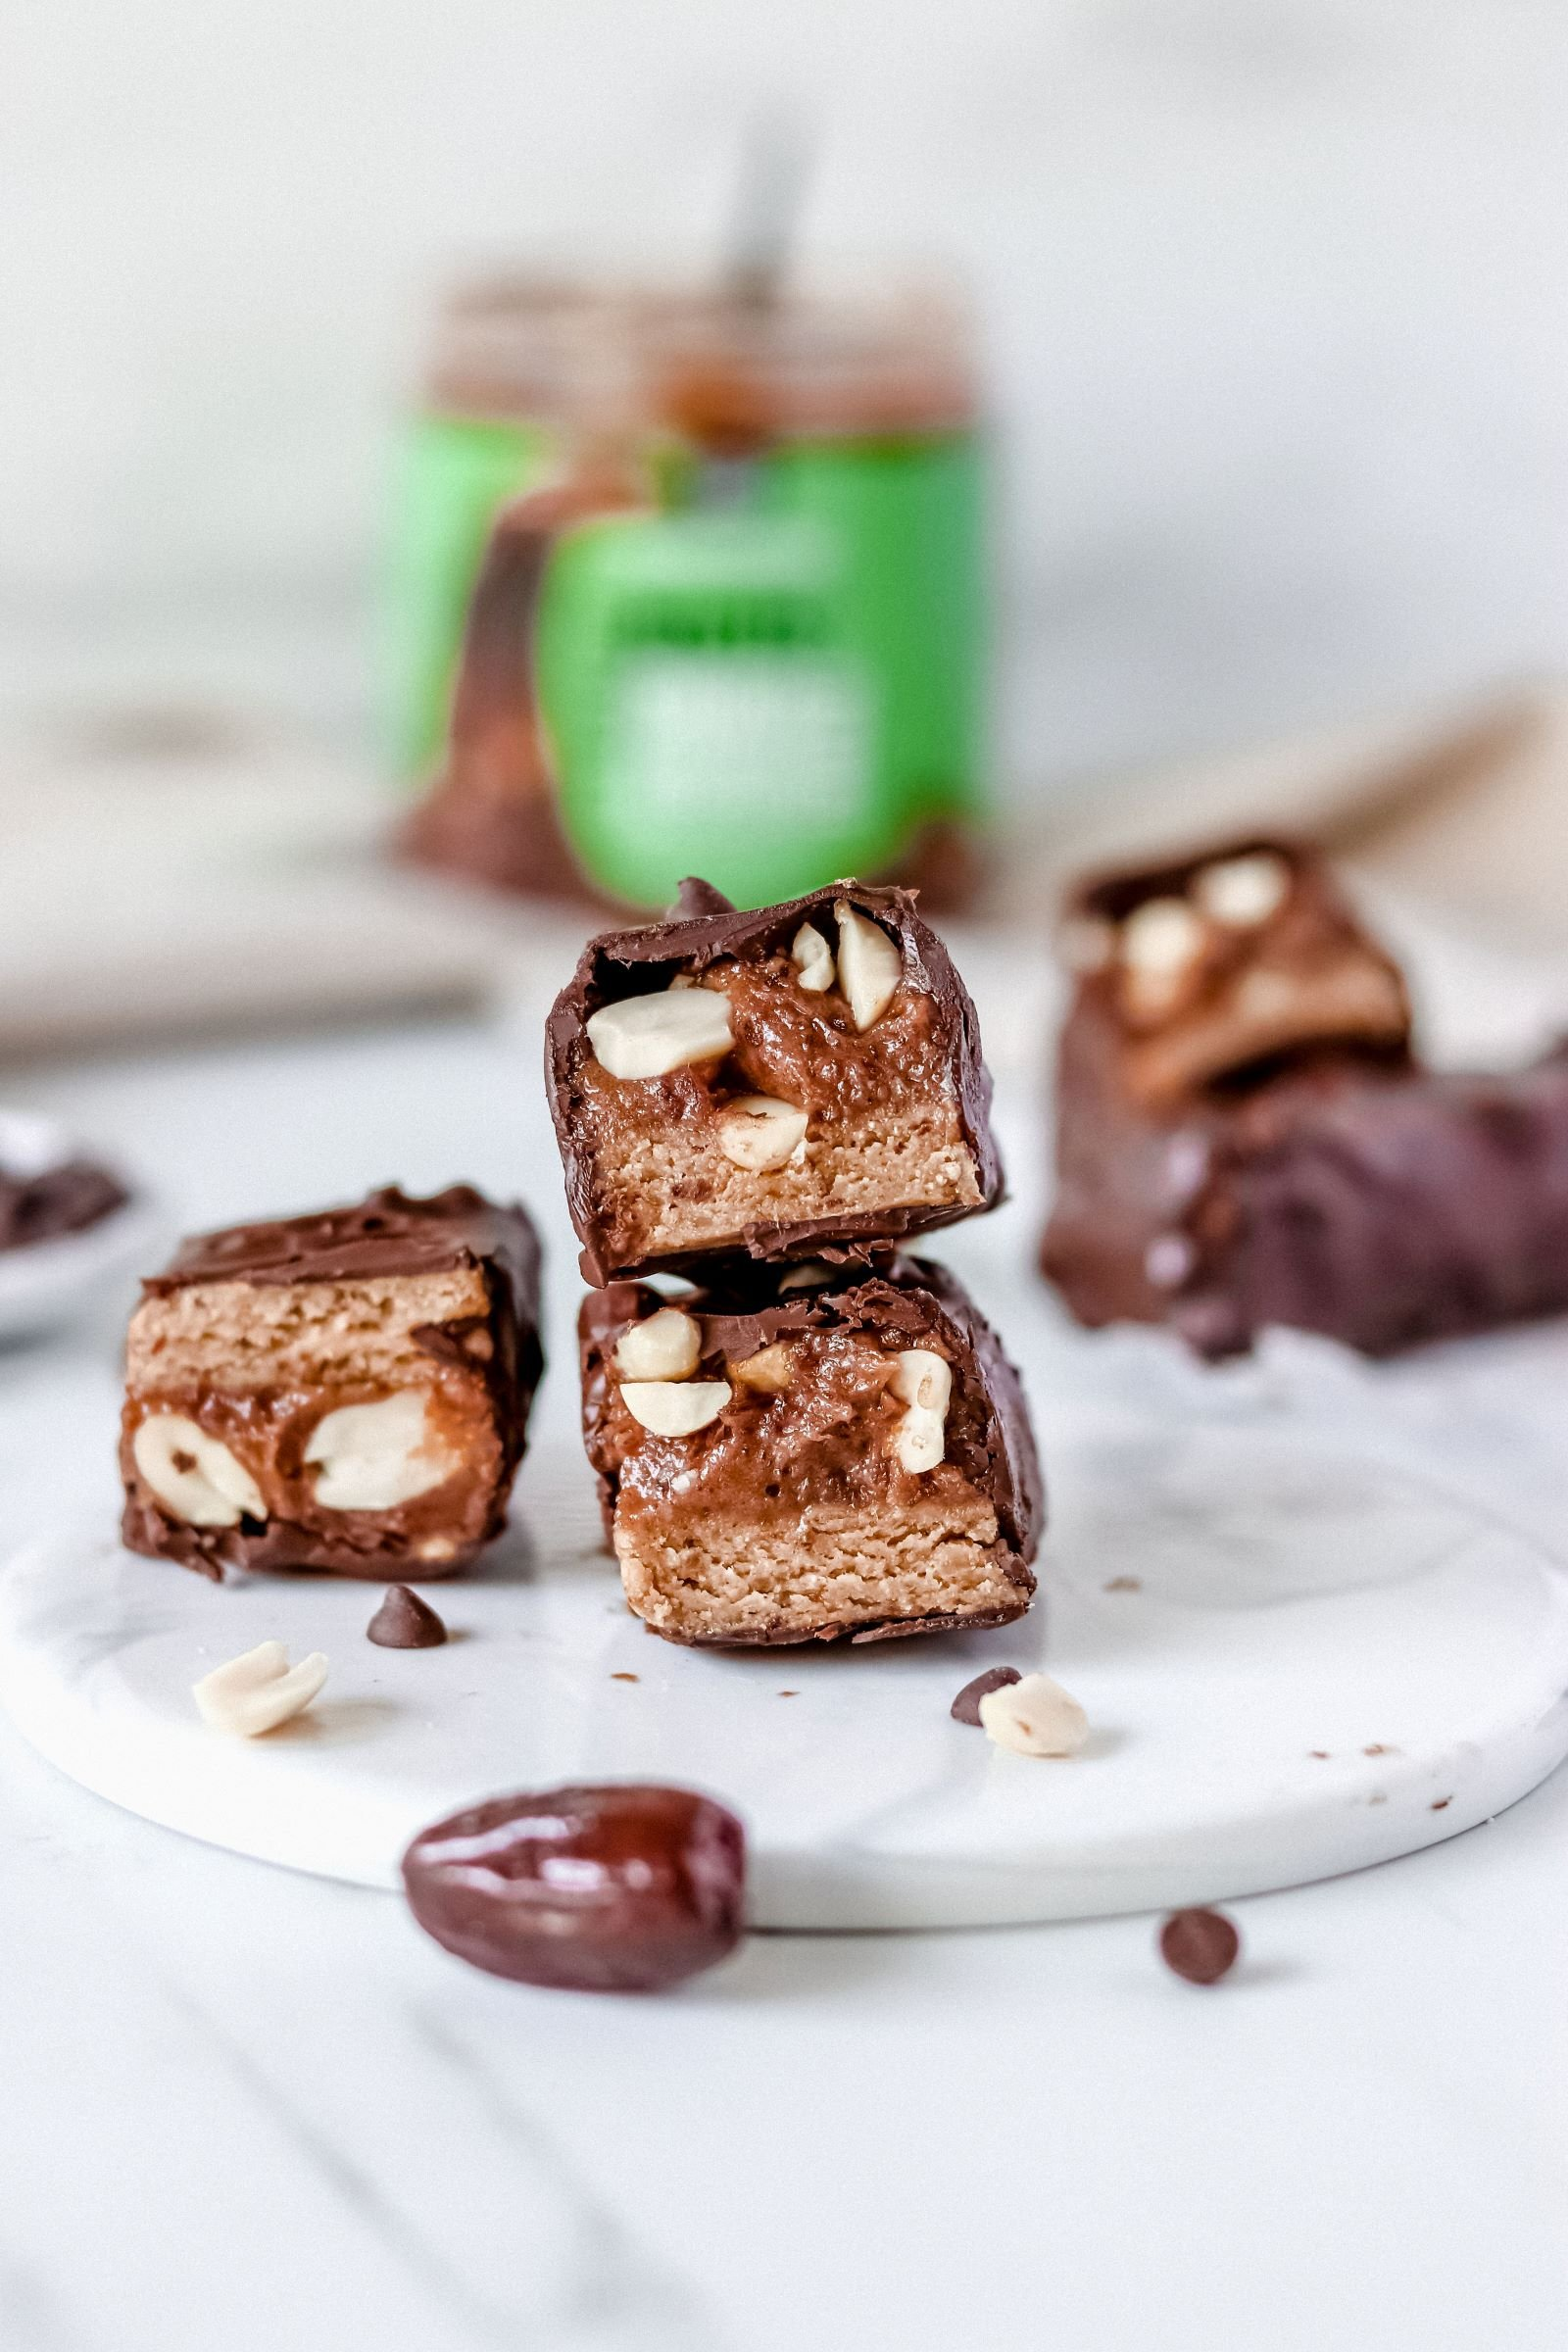 Vegan Snickers Bars loaded with Caramel Biscuits Peanut Butter